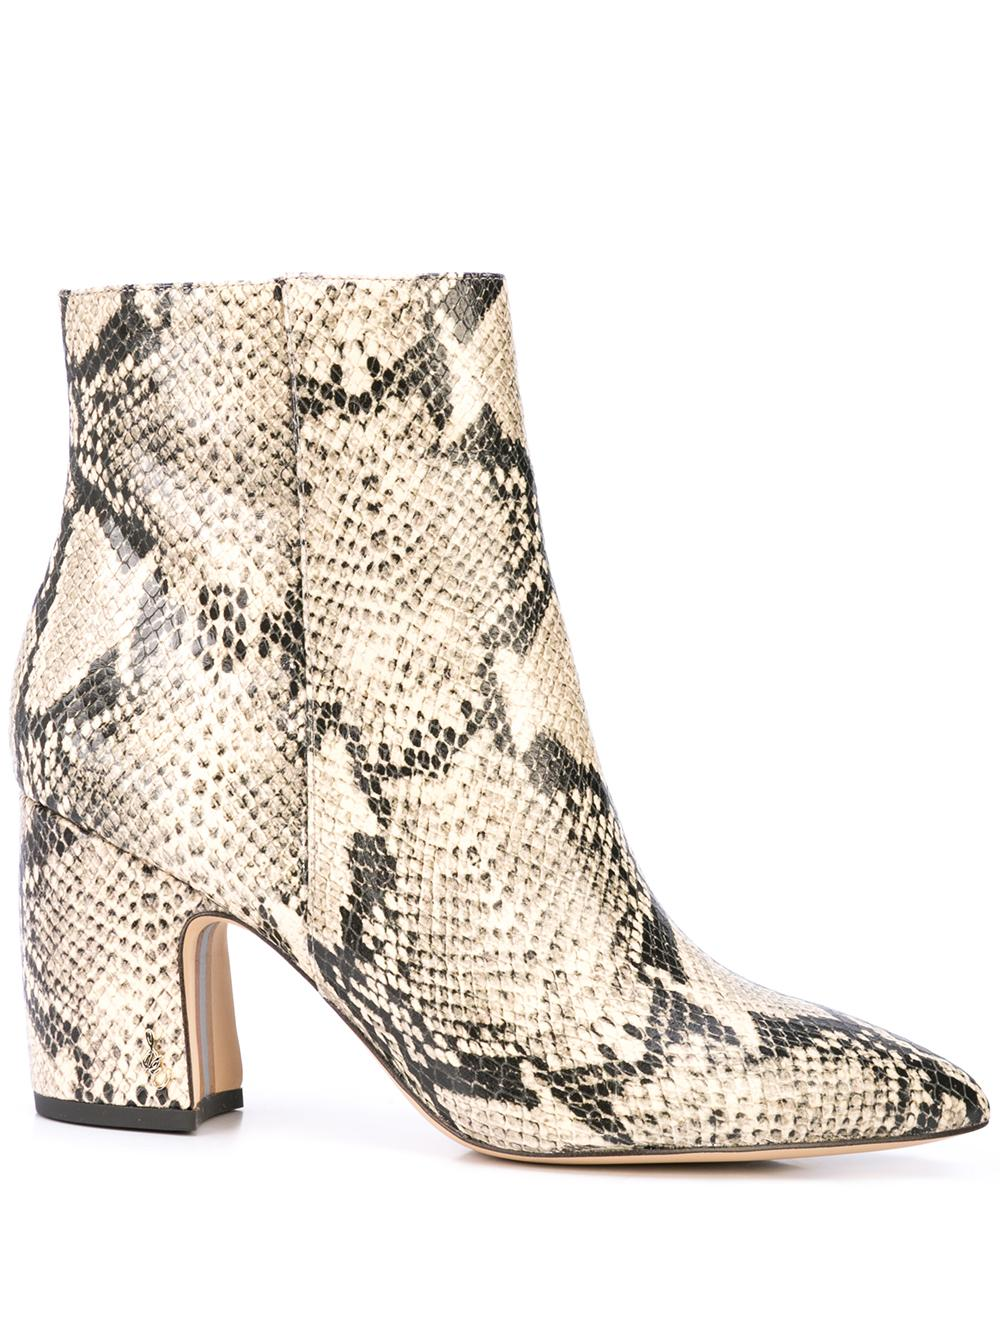 Snake Printed Pointed Toe Bootie Item # HILTY-SNAKE